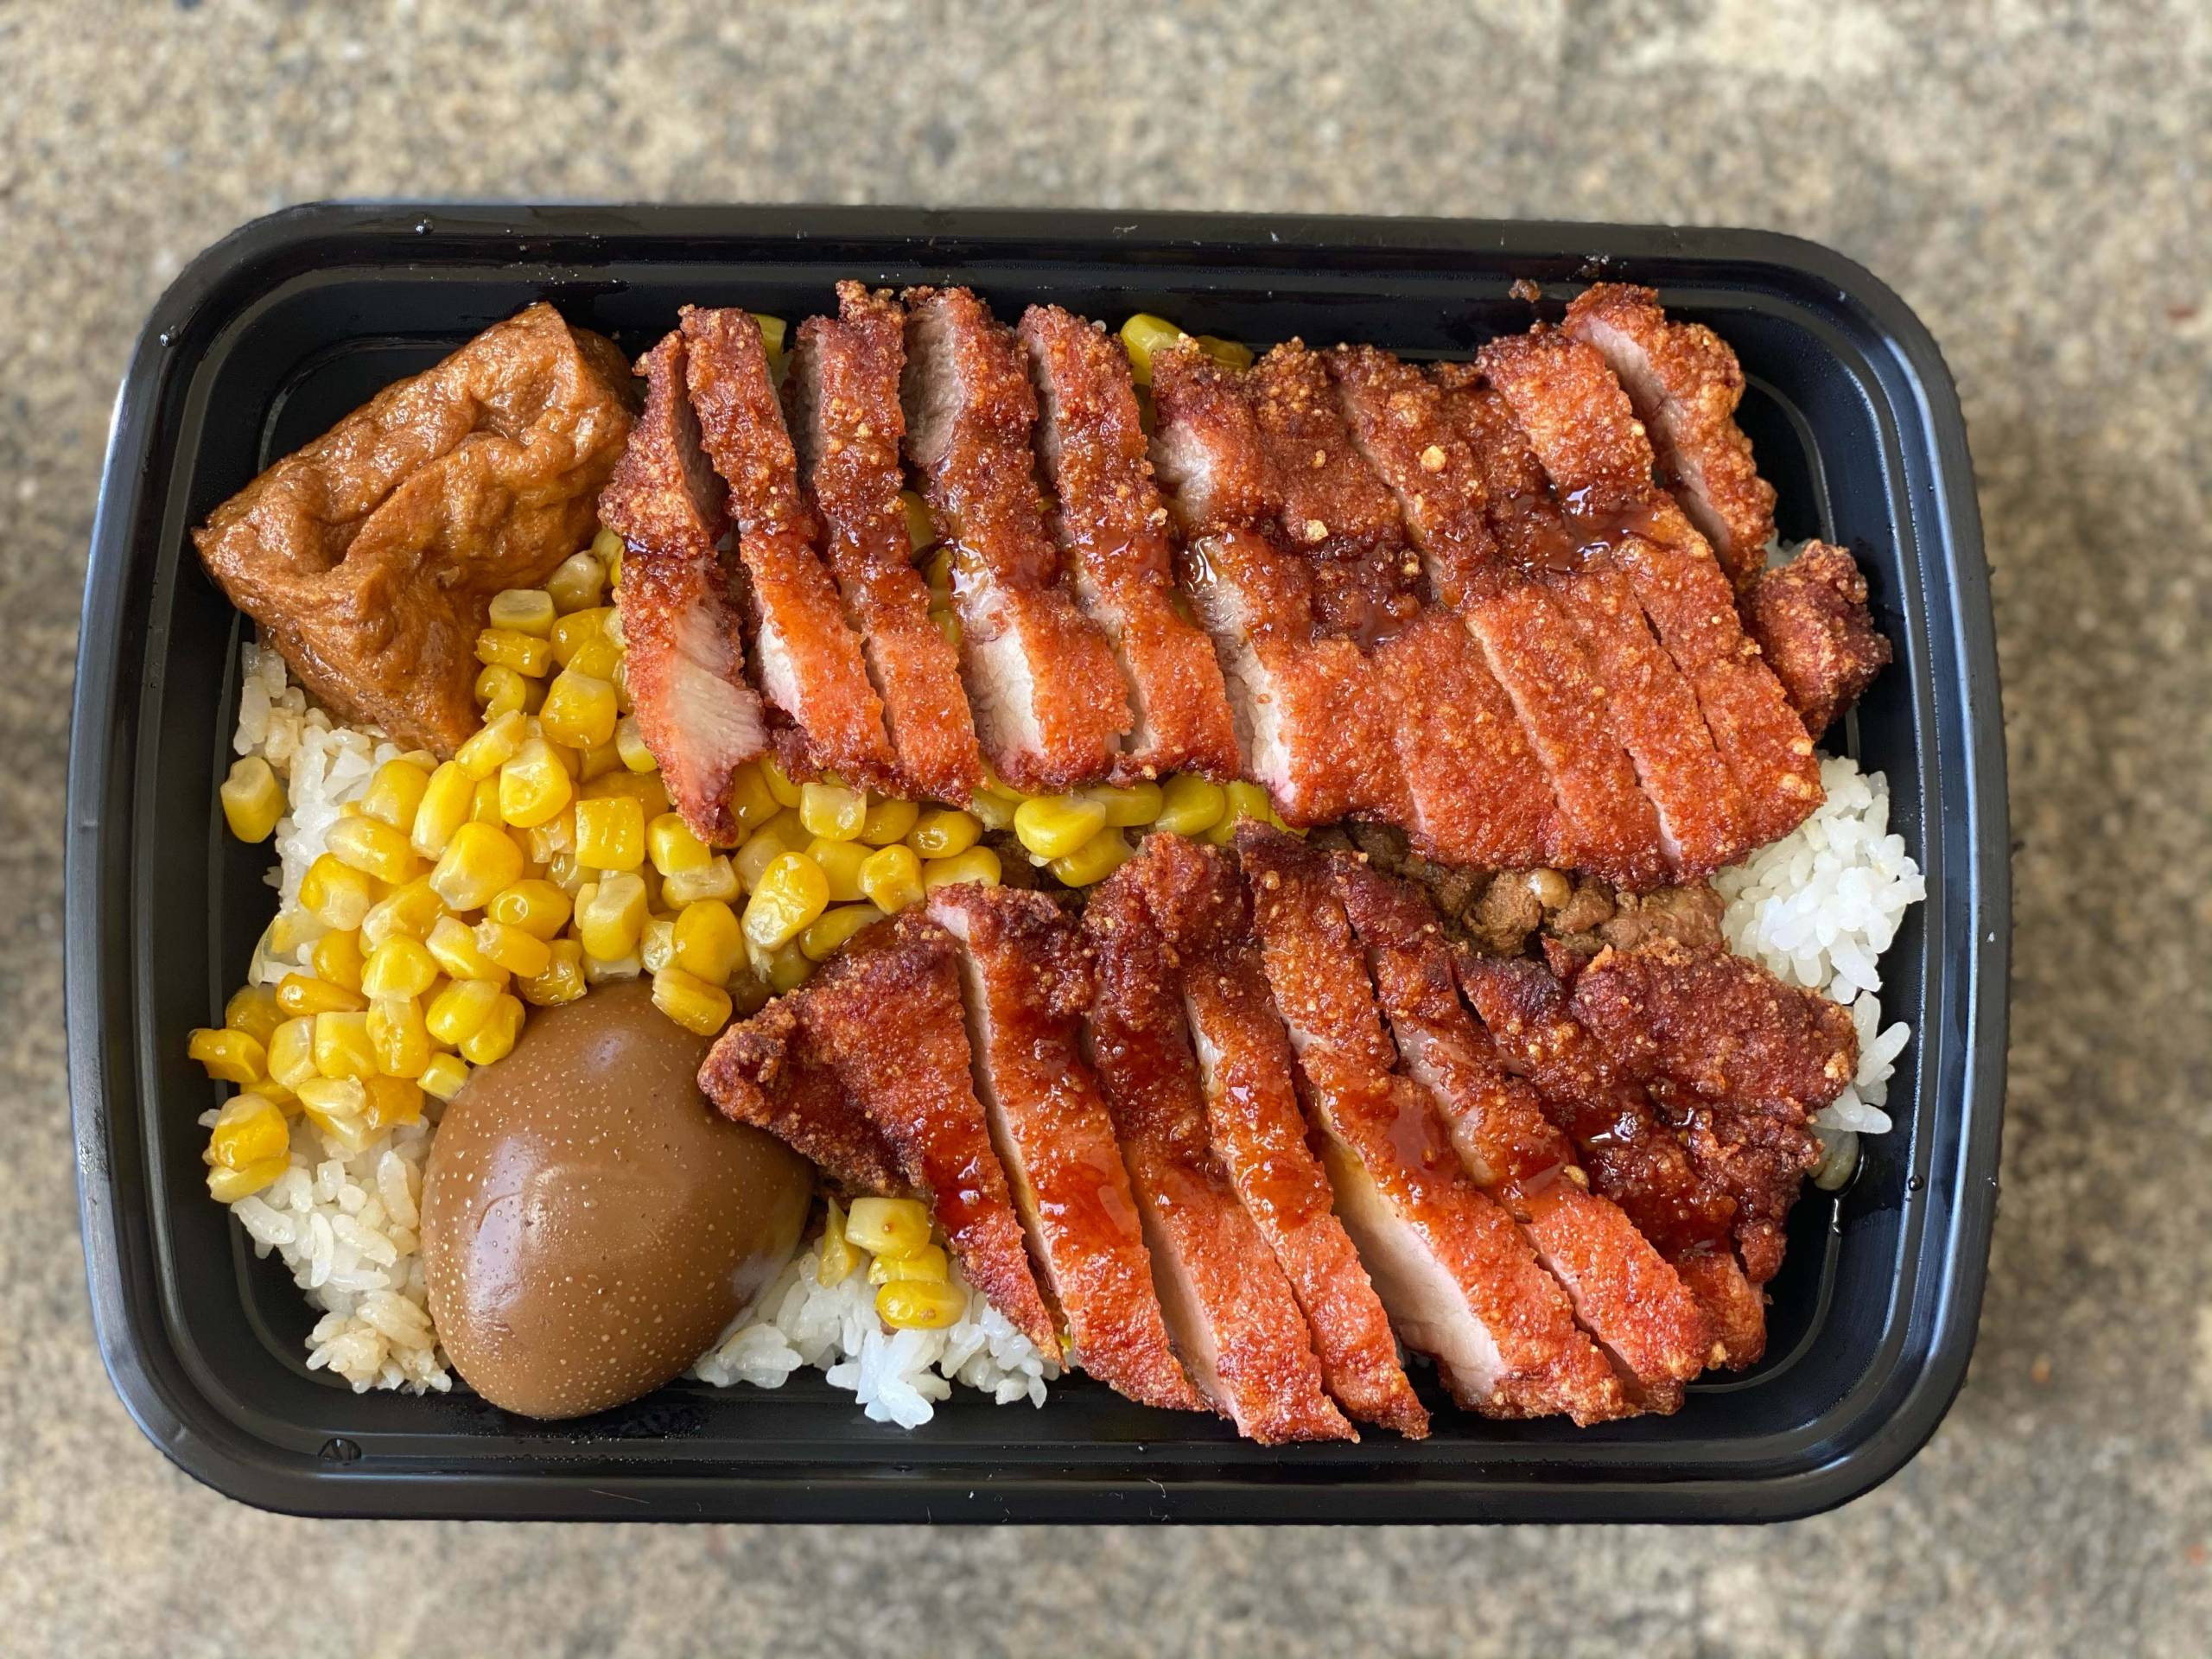 Overhead view of a red yeast pork bento box: slices of red-tinged crispy pork, corn kernels, a braised egg and tofu over white rice.